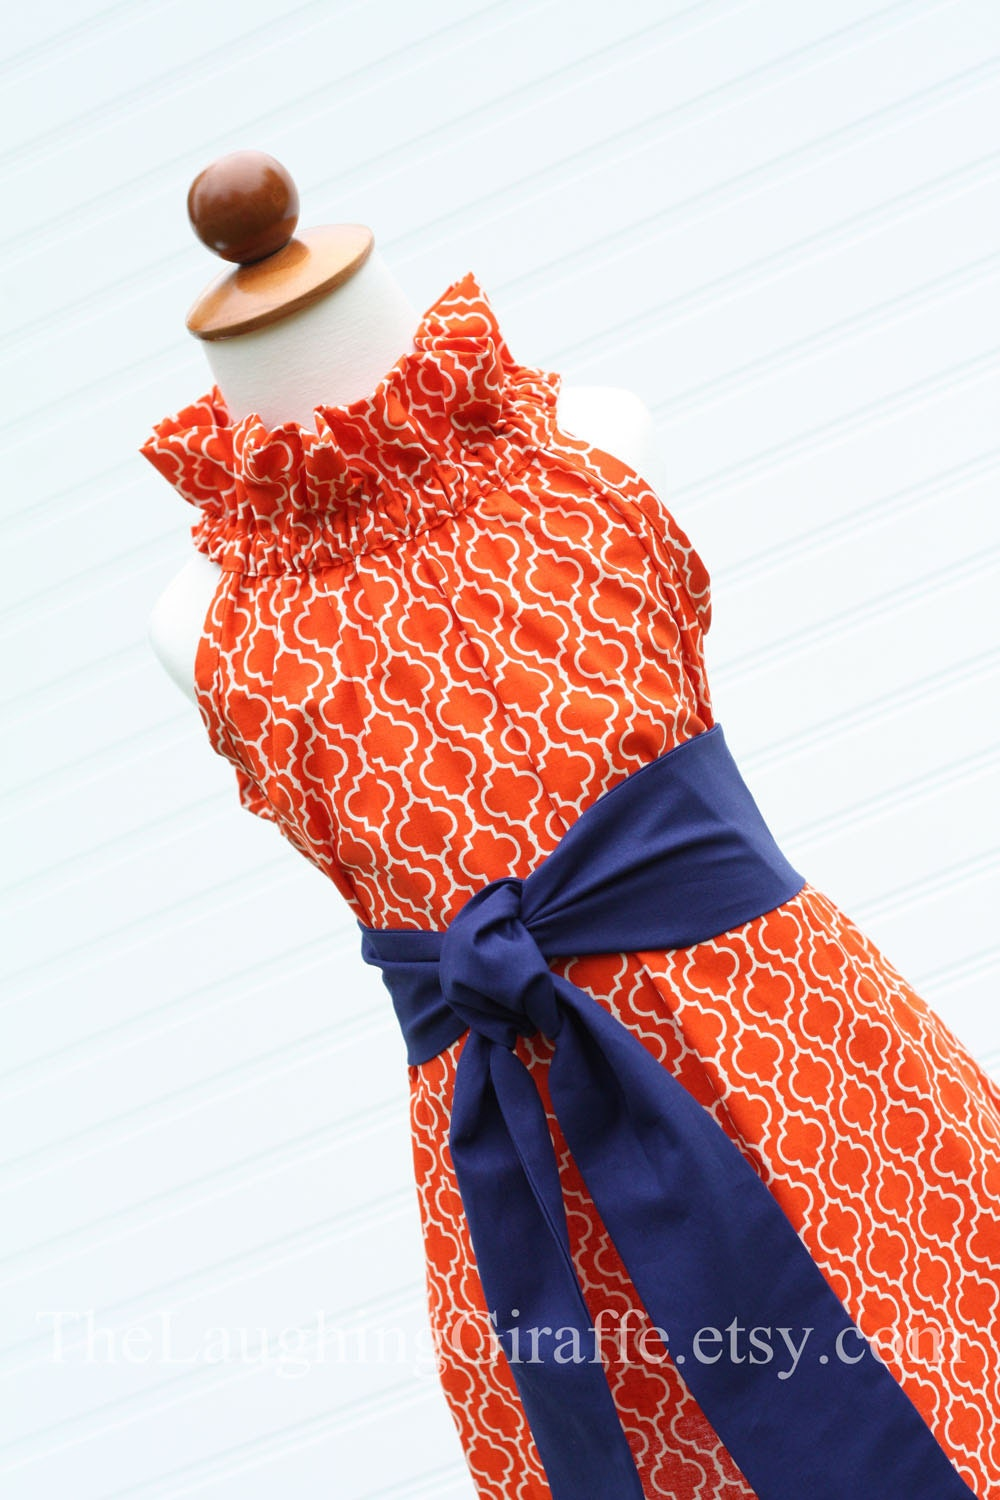 NEW - Tangerine Delight...Ruffler Dress with Removable Sash...Size 3, 6, 9, 12 months, 1, 2, 3, 4, 5, 6, 7/8, 9/10, 11/12